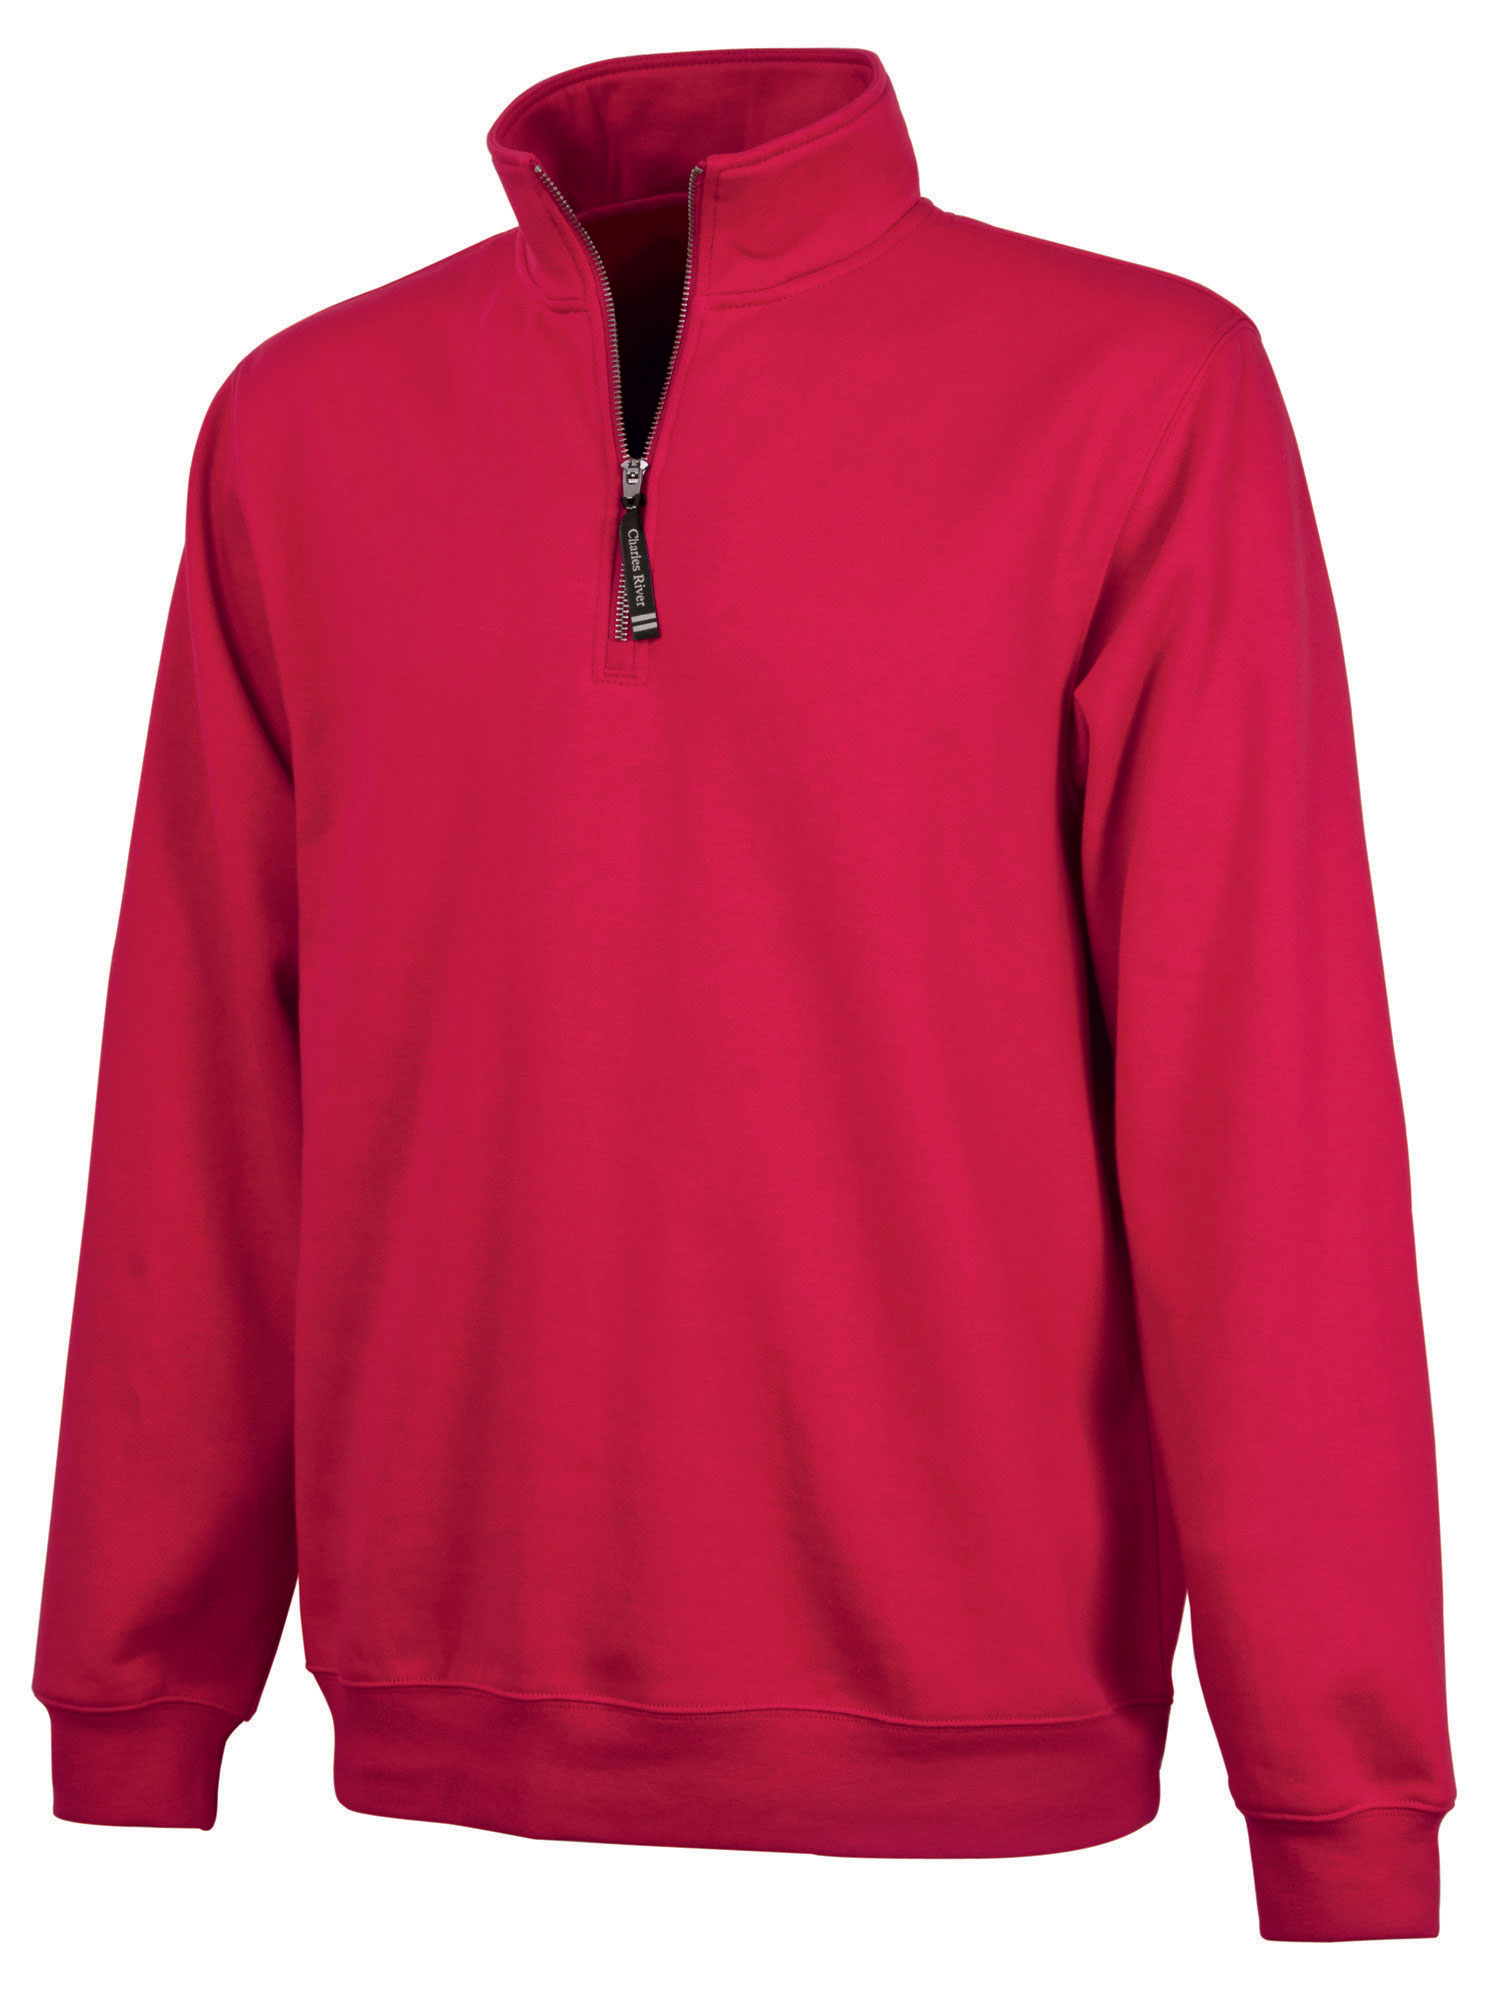 Charles River Adult Crosswind Quarter Zip Sweatshirt